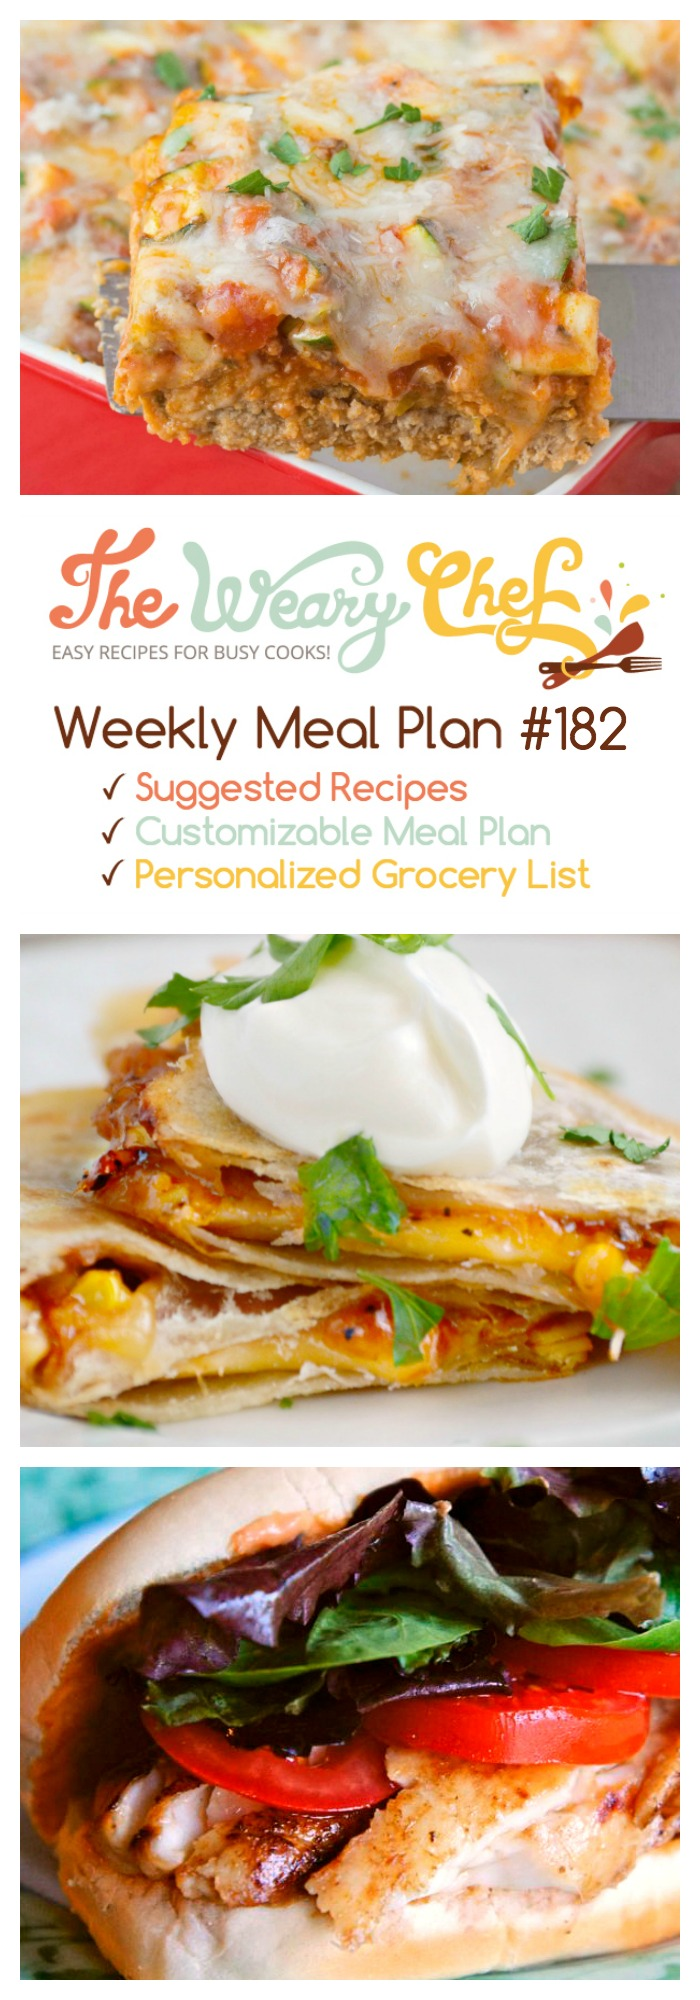 This week's easy dinner menu features Italian Meatloaf, BBQ Chicken Quesadillas, and lots more!